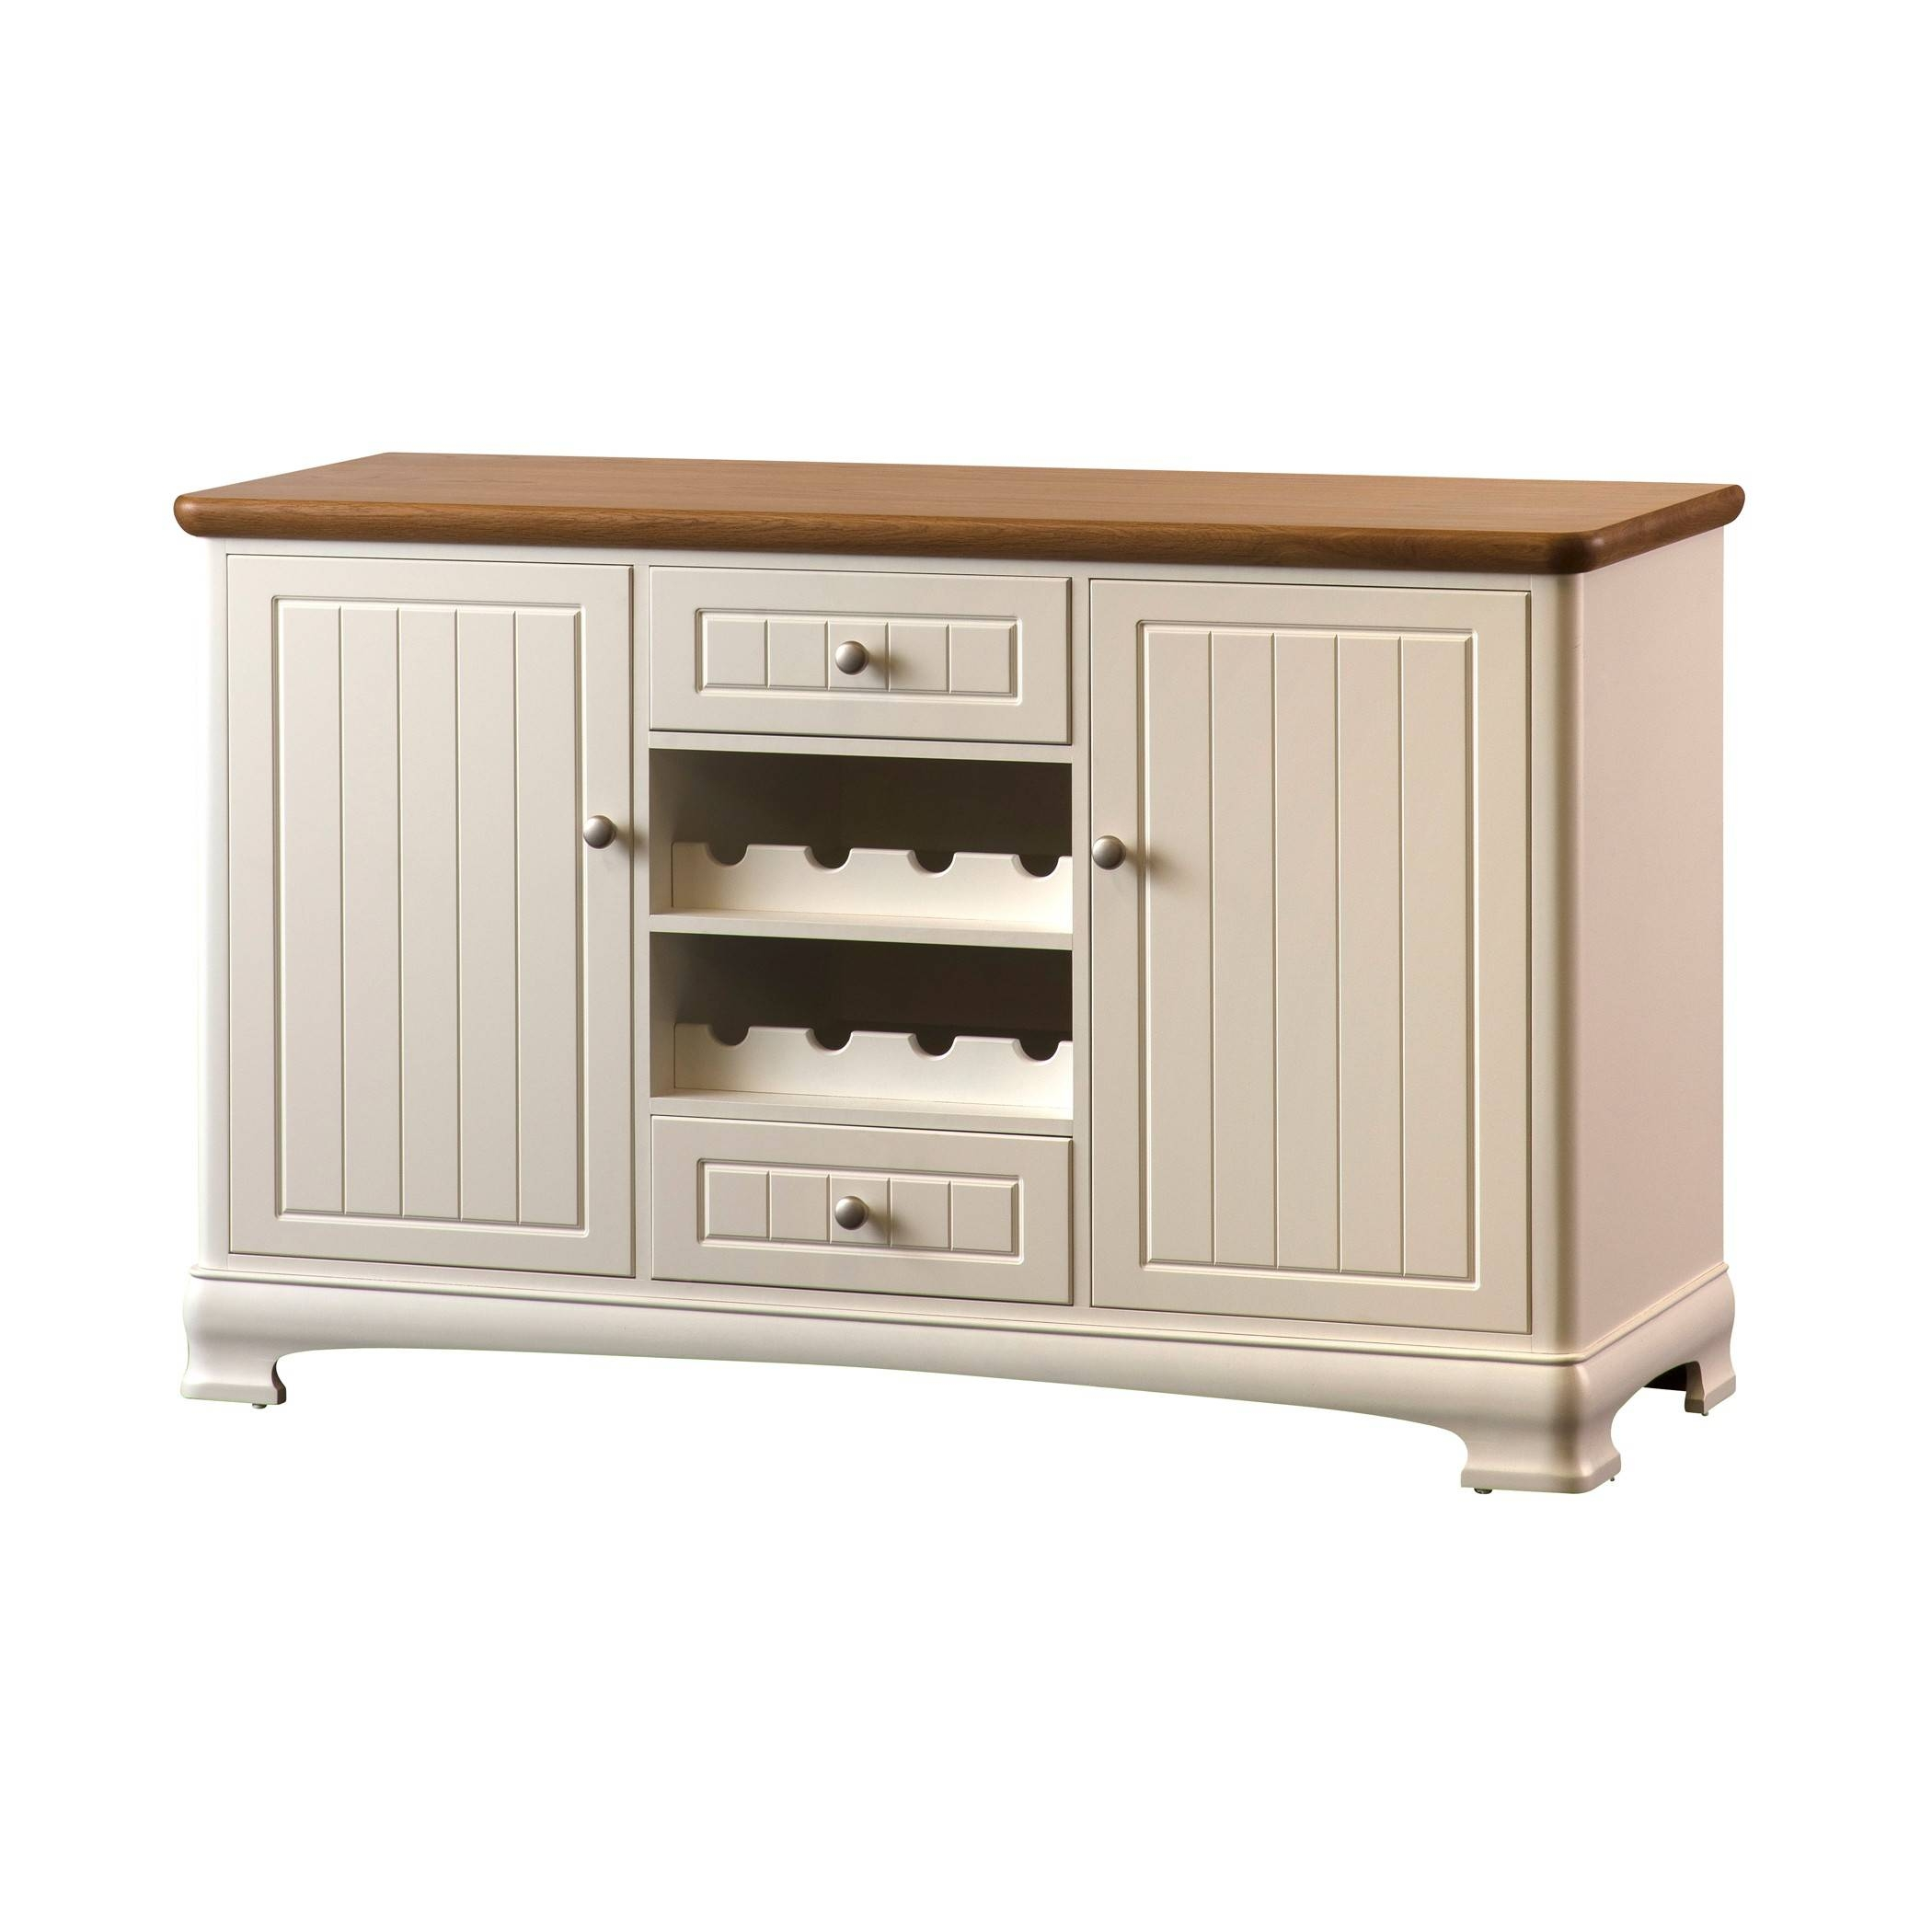 Painted Large Sideboard With Wine Rack | Gola Furniture Uk Regarding Most Current Sideboards With Wine Rack (#11 of 15)